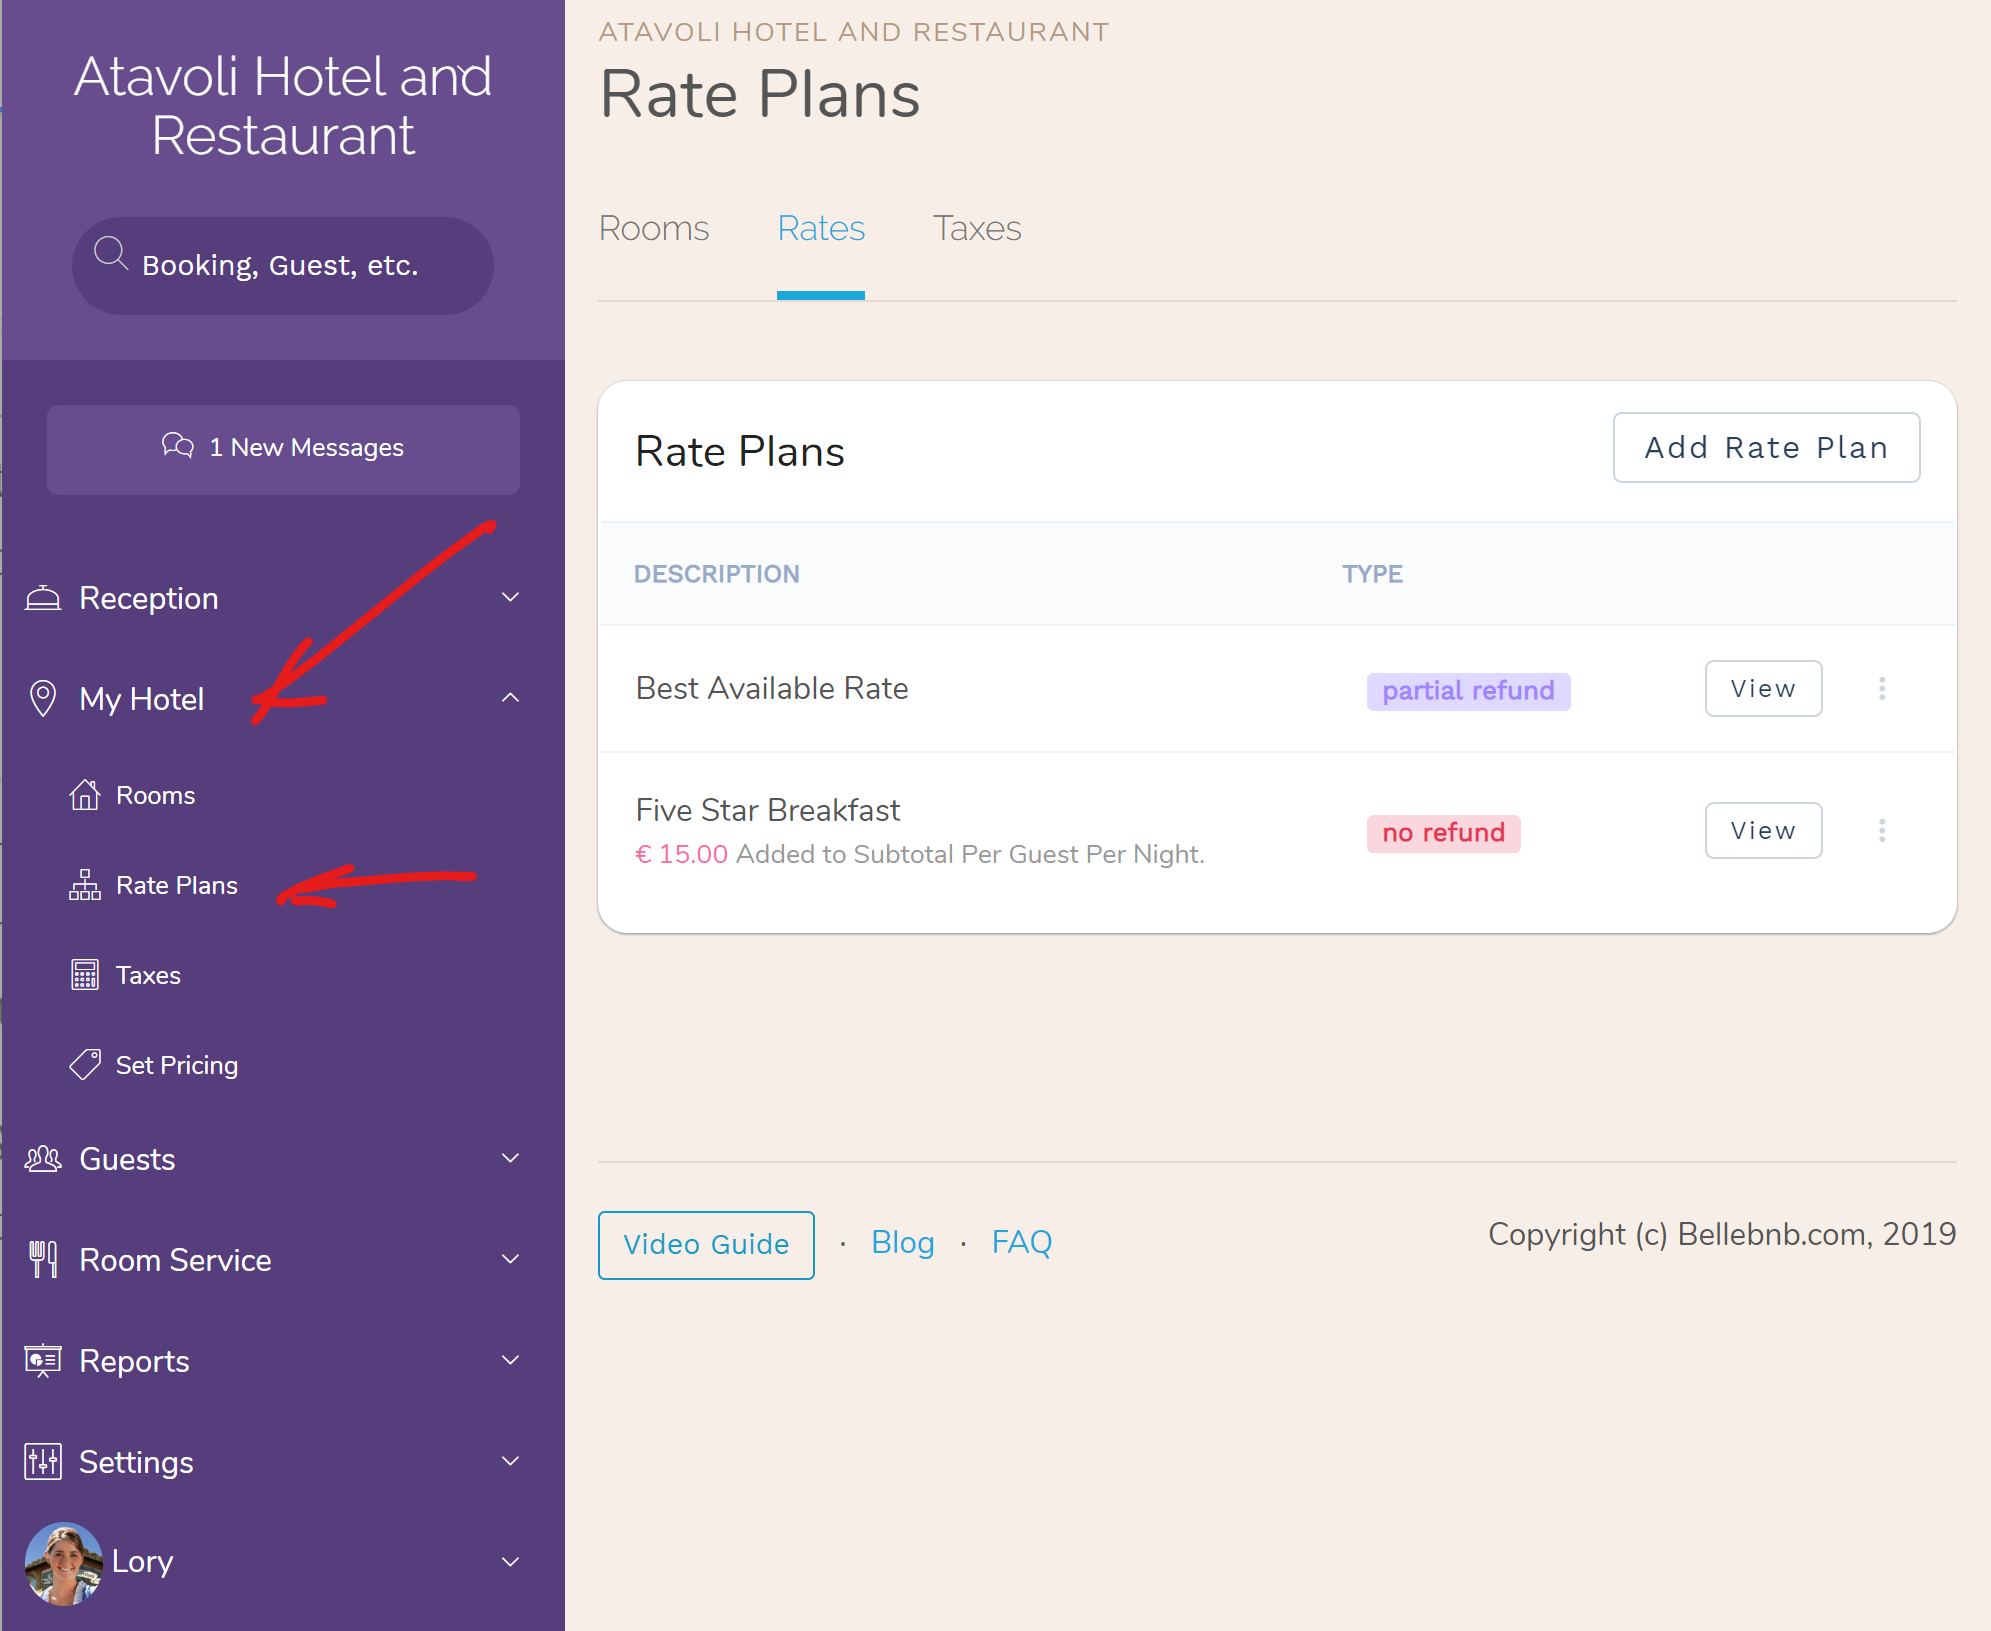 Hotel Rate Plans | Value-added/Per Guest Rate Plans